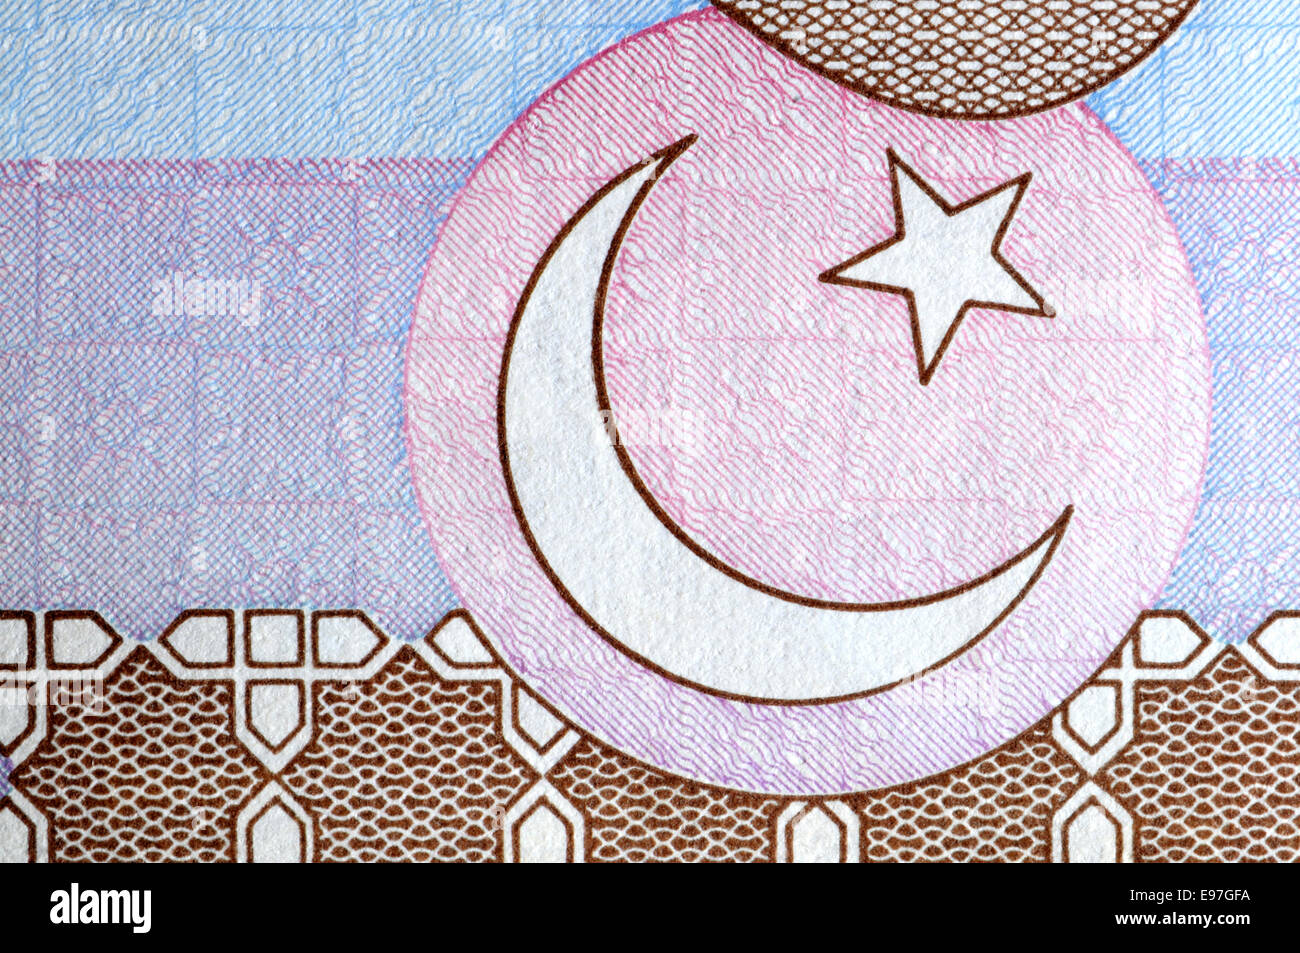 Detail from a Pakistan banknote showing the crescent moon and a star - Stock Image